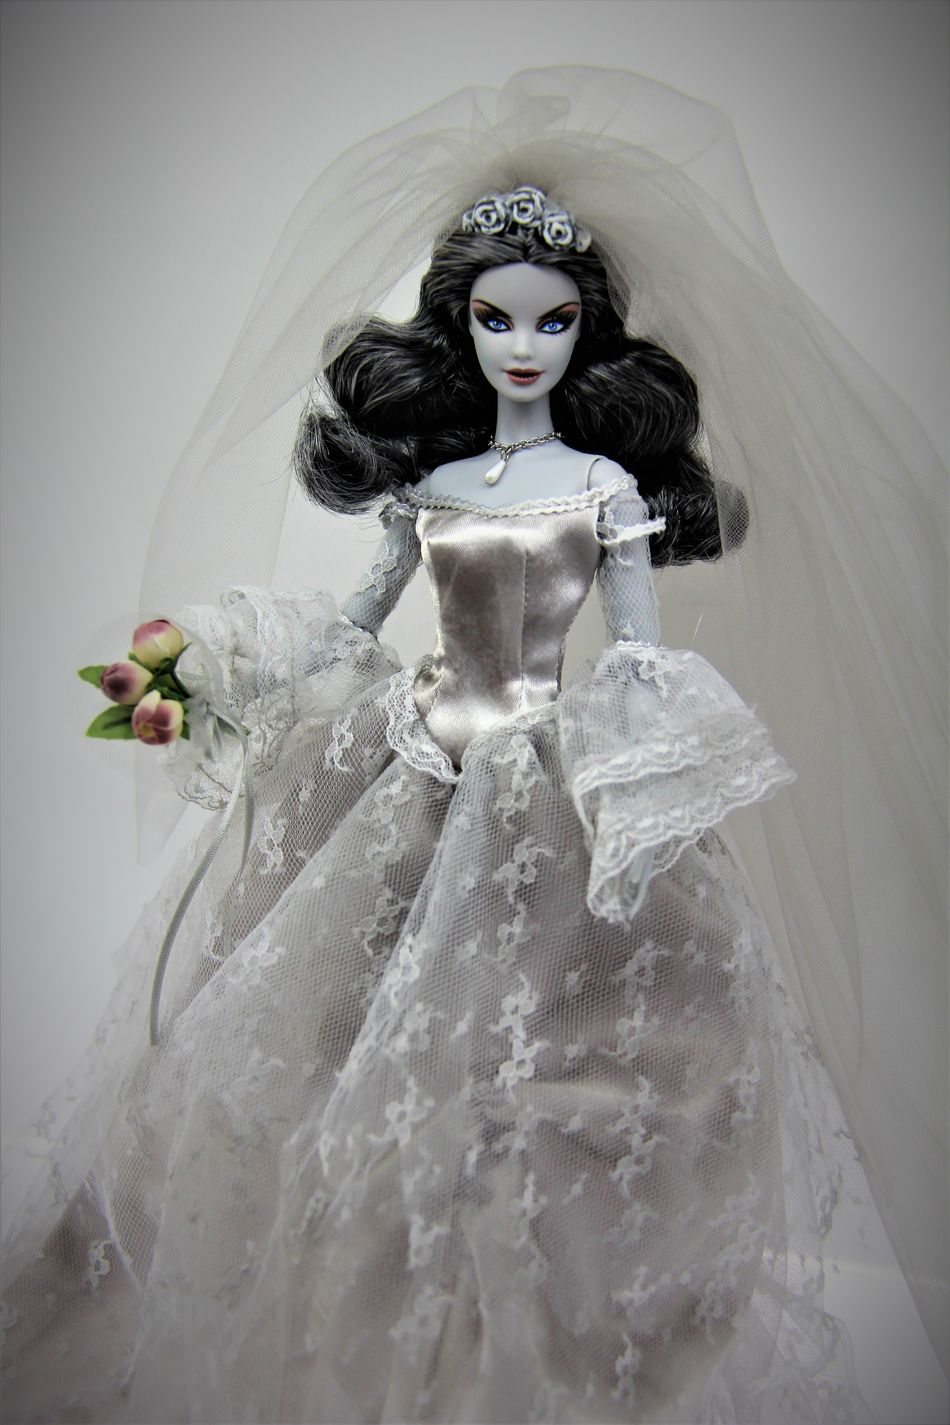 Barbie Barbie Collector Barbie Expo Fashion Portrait Wedding Dress Women Zombie Girl